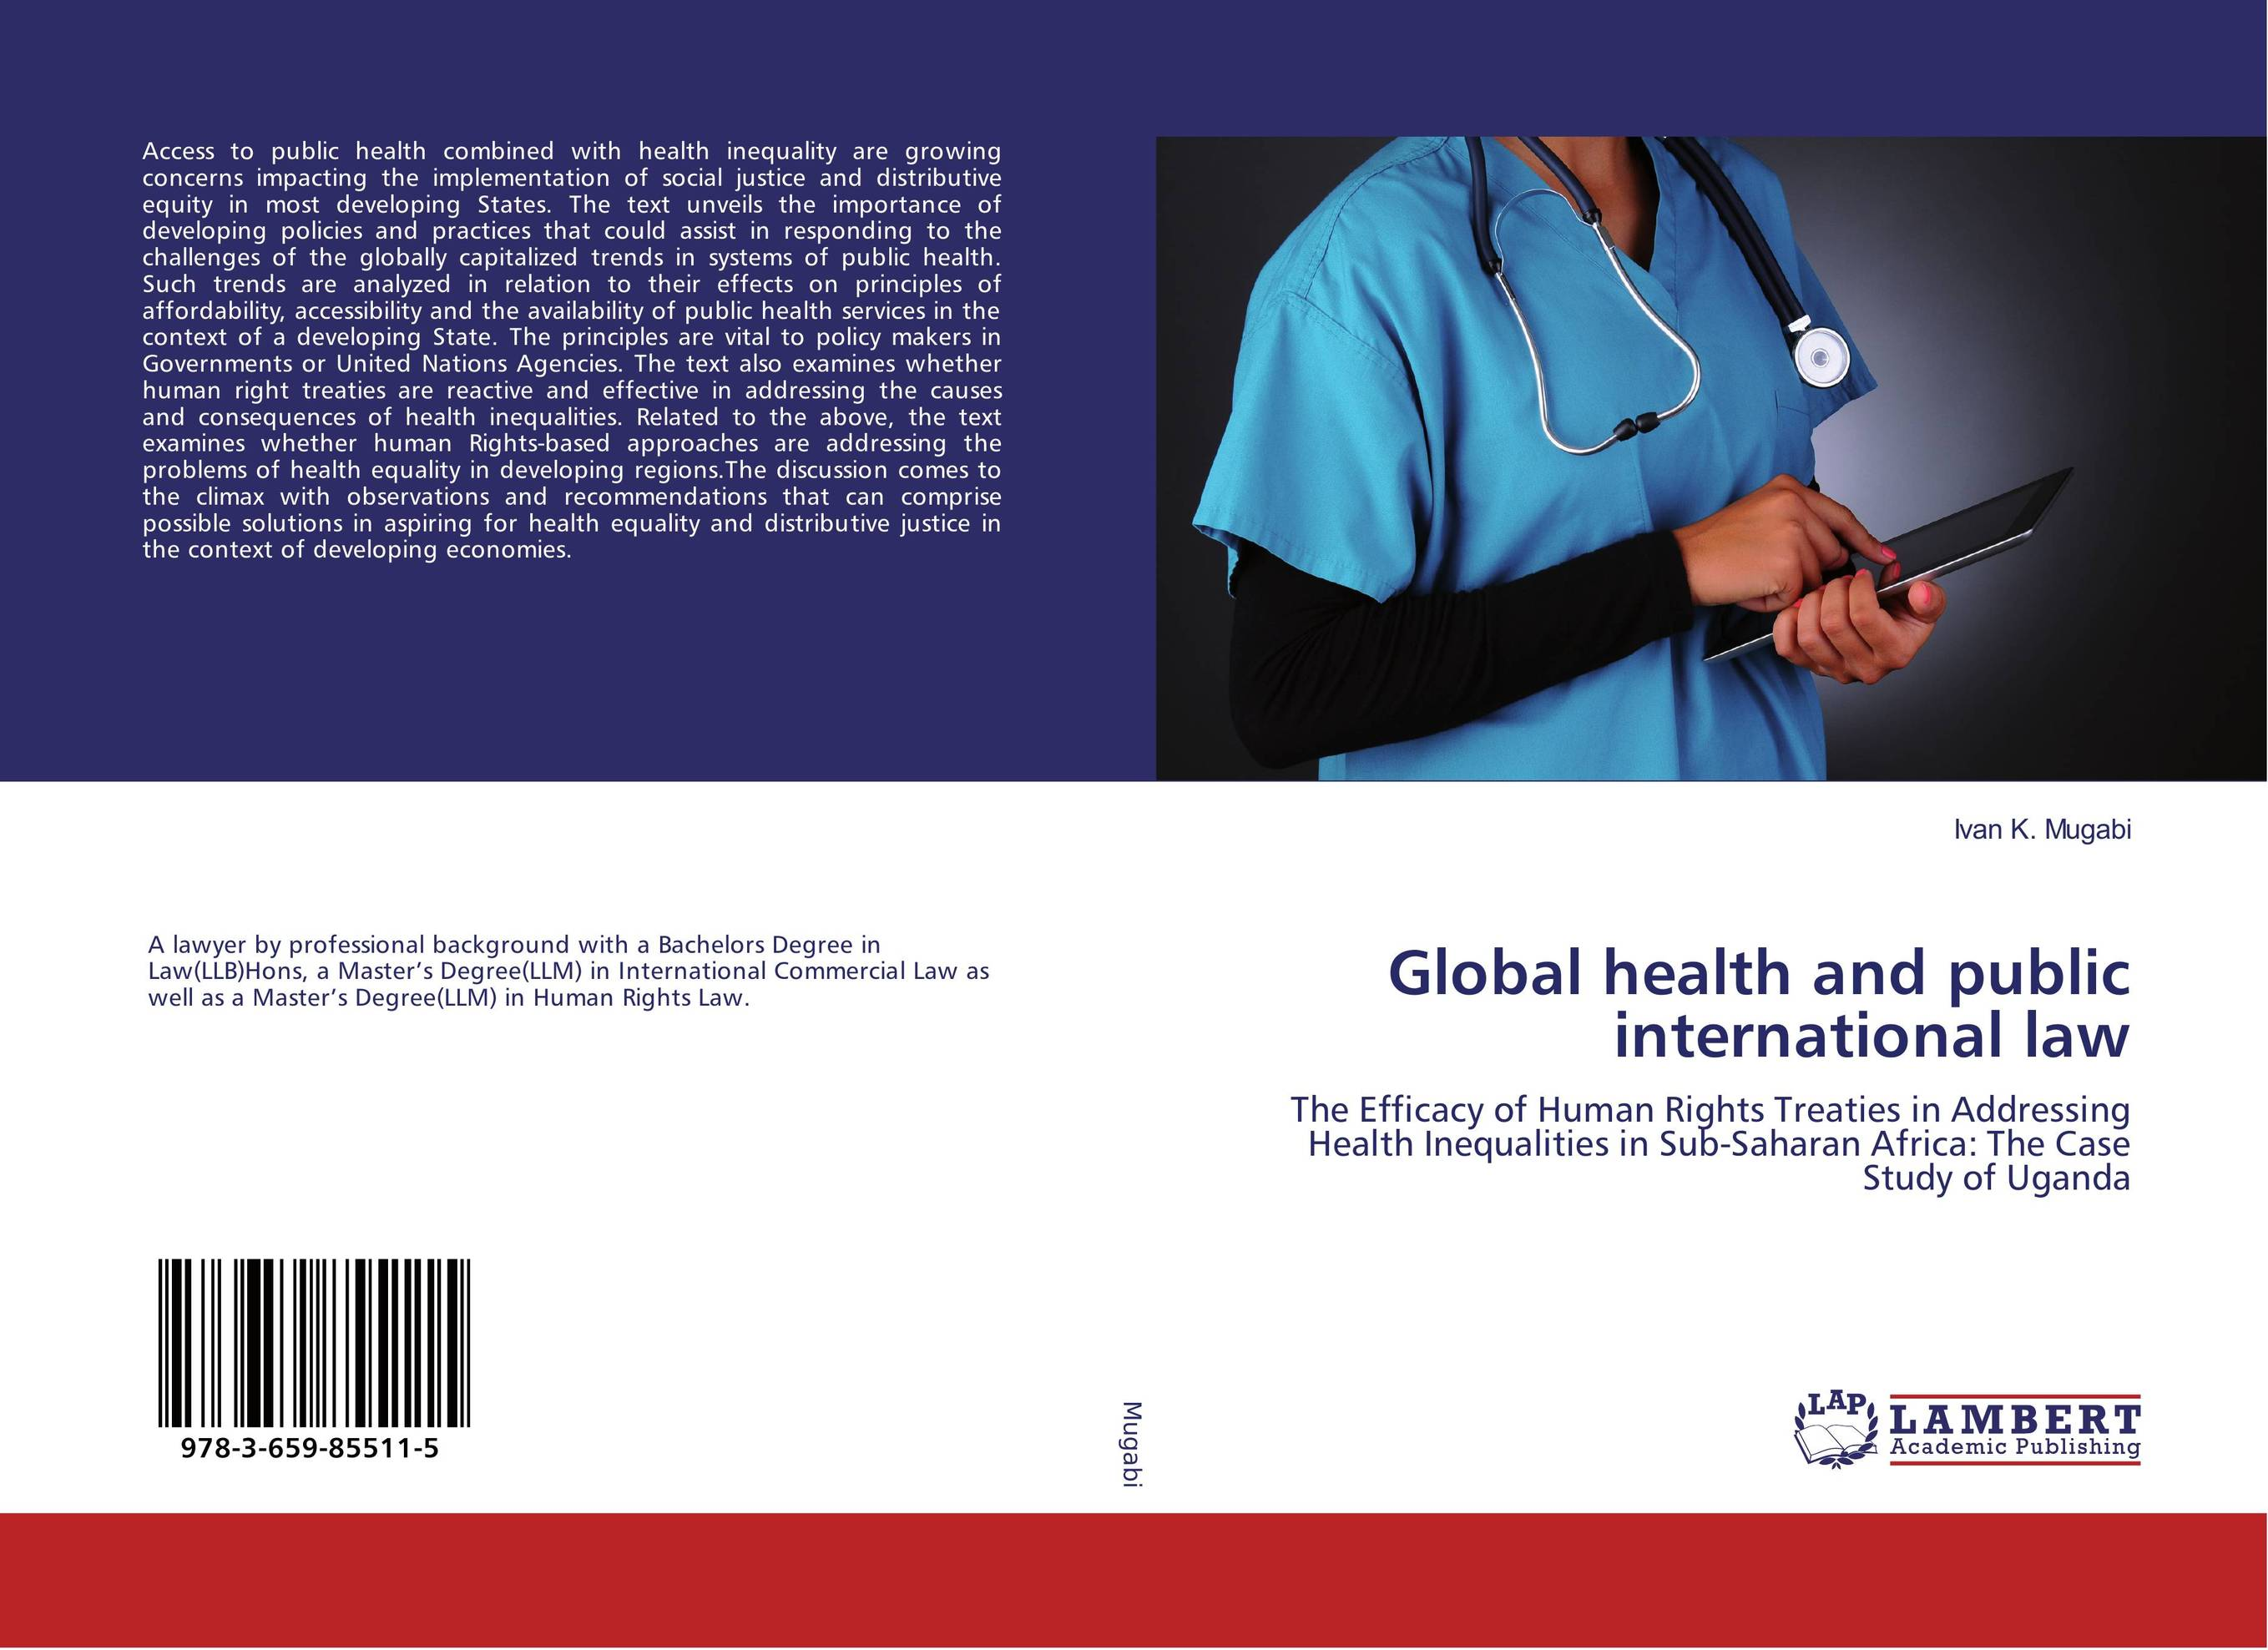 Global health and public international law prostate health devices is prostate removal prostatitis mainly for the prostate health and prostatitis health capsule